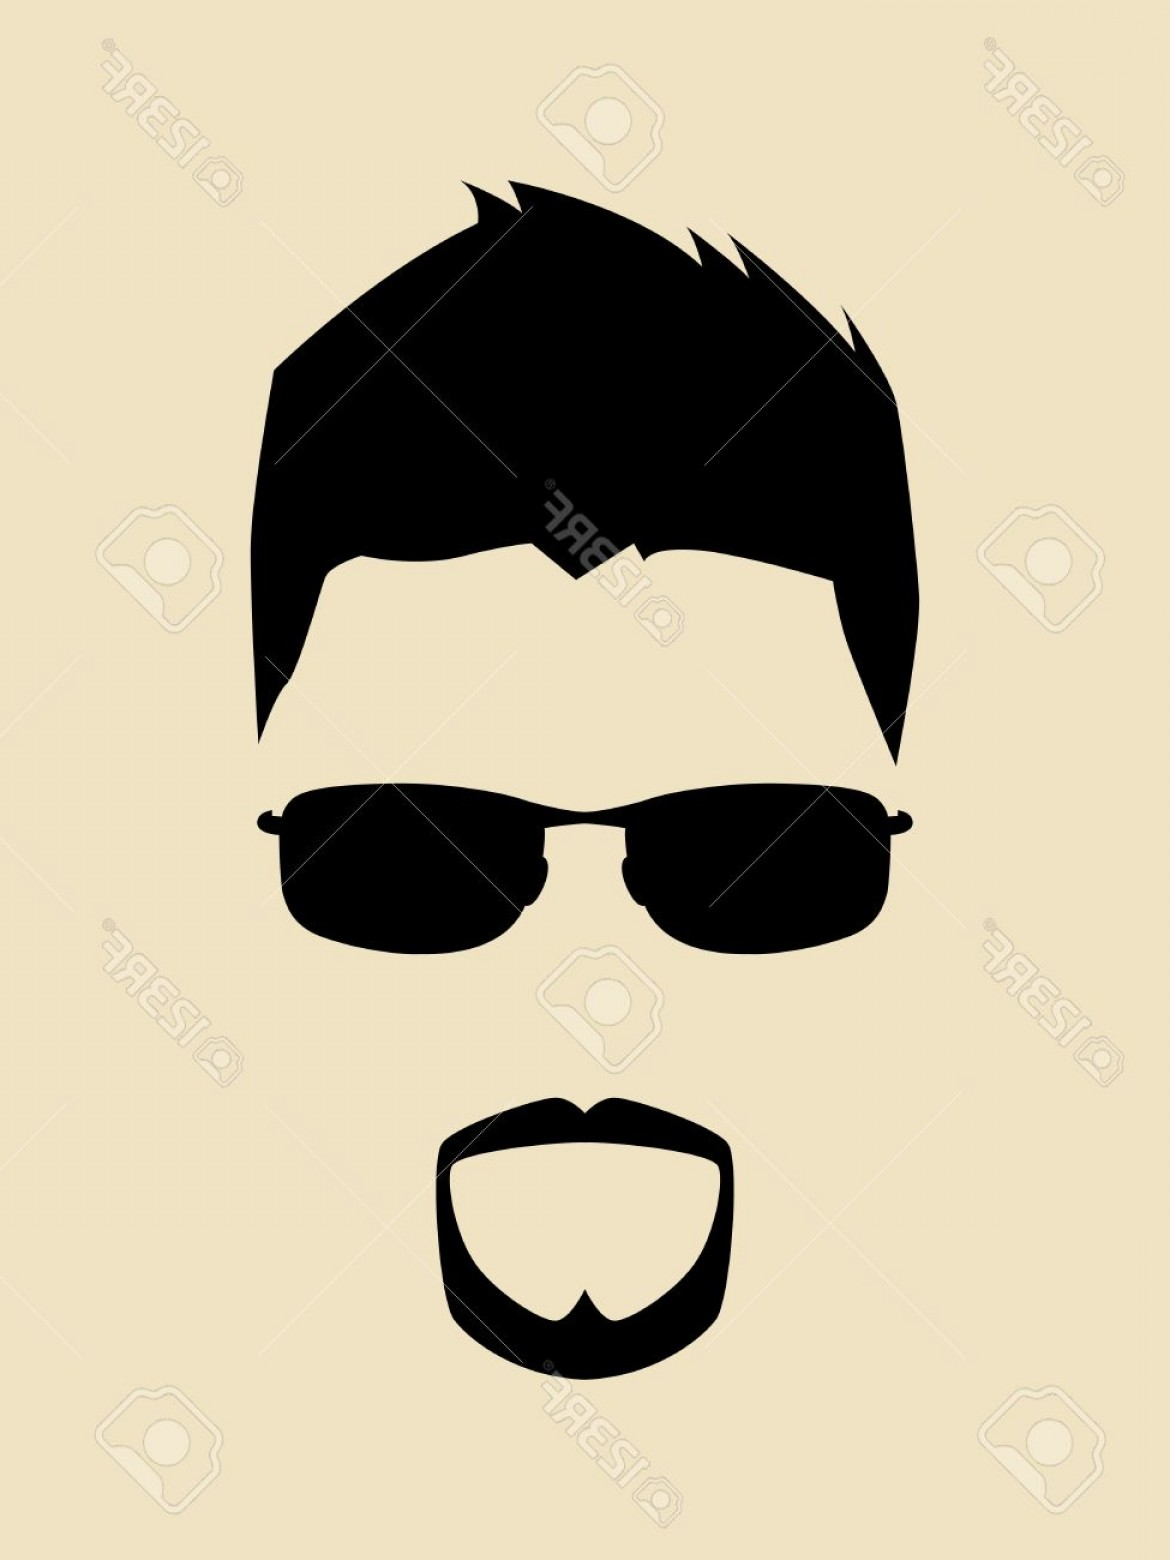 Beard Vector Manga Avatar: Photocool Man With Beards And Mustache Wearing A Sunglasses